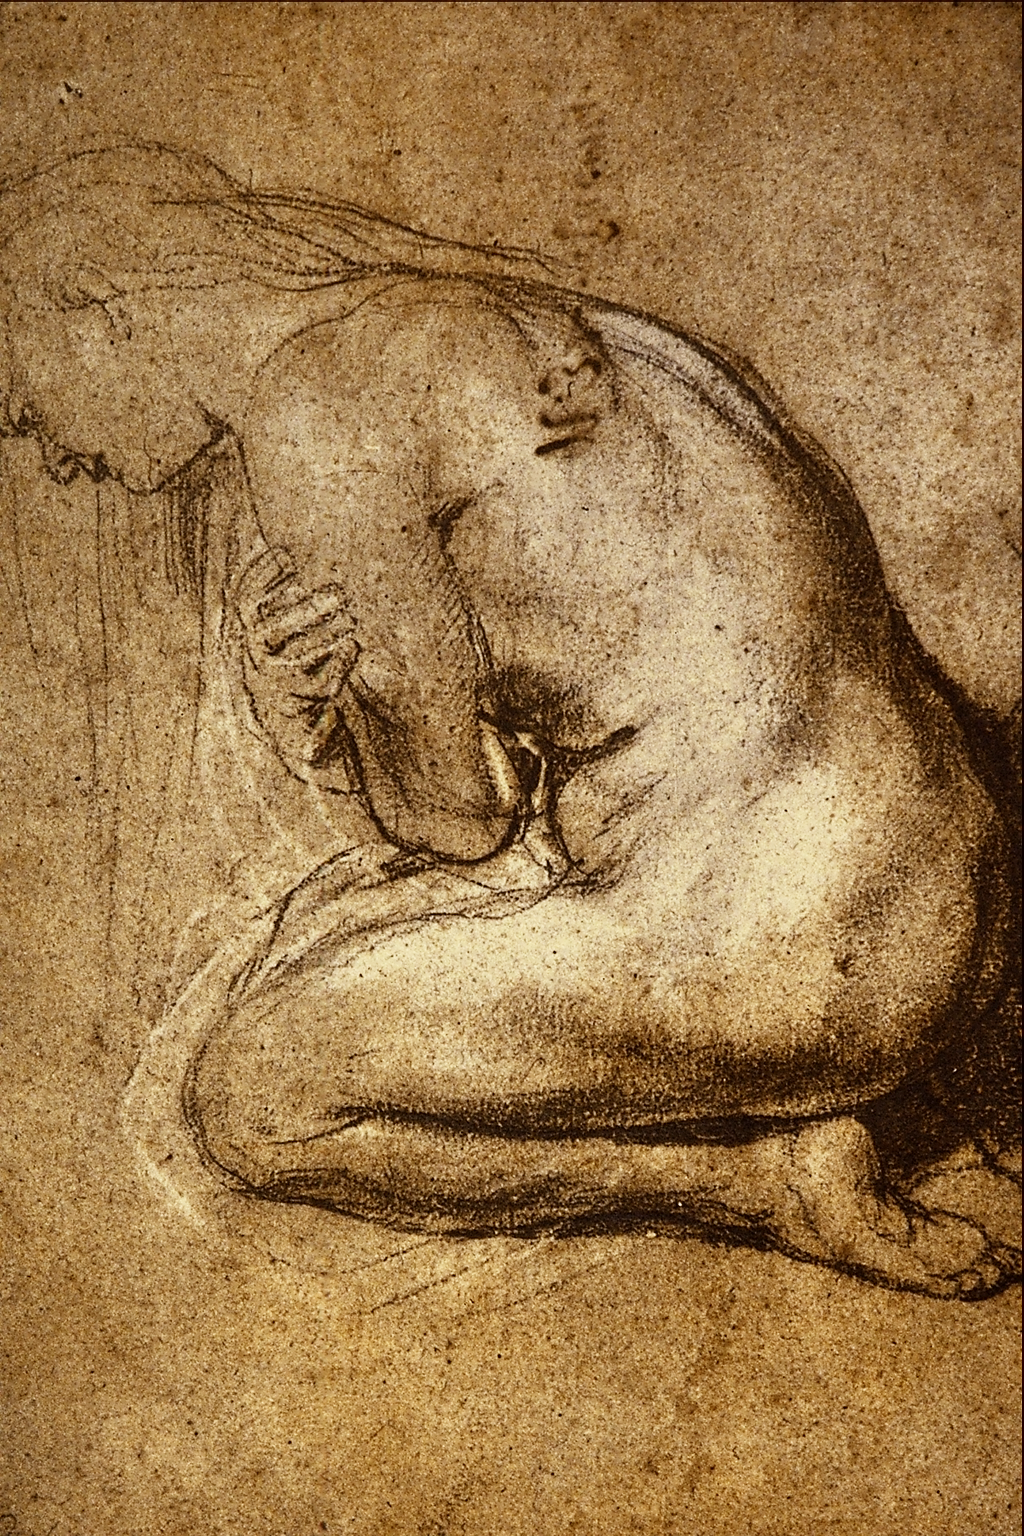 Rubens Figure Drawings File:Study for a St. M...